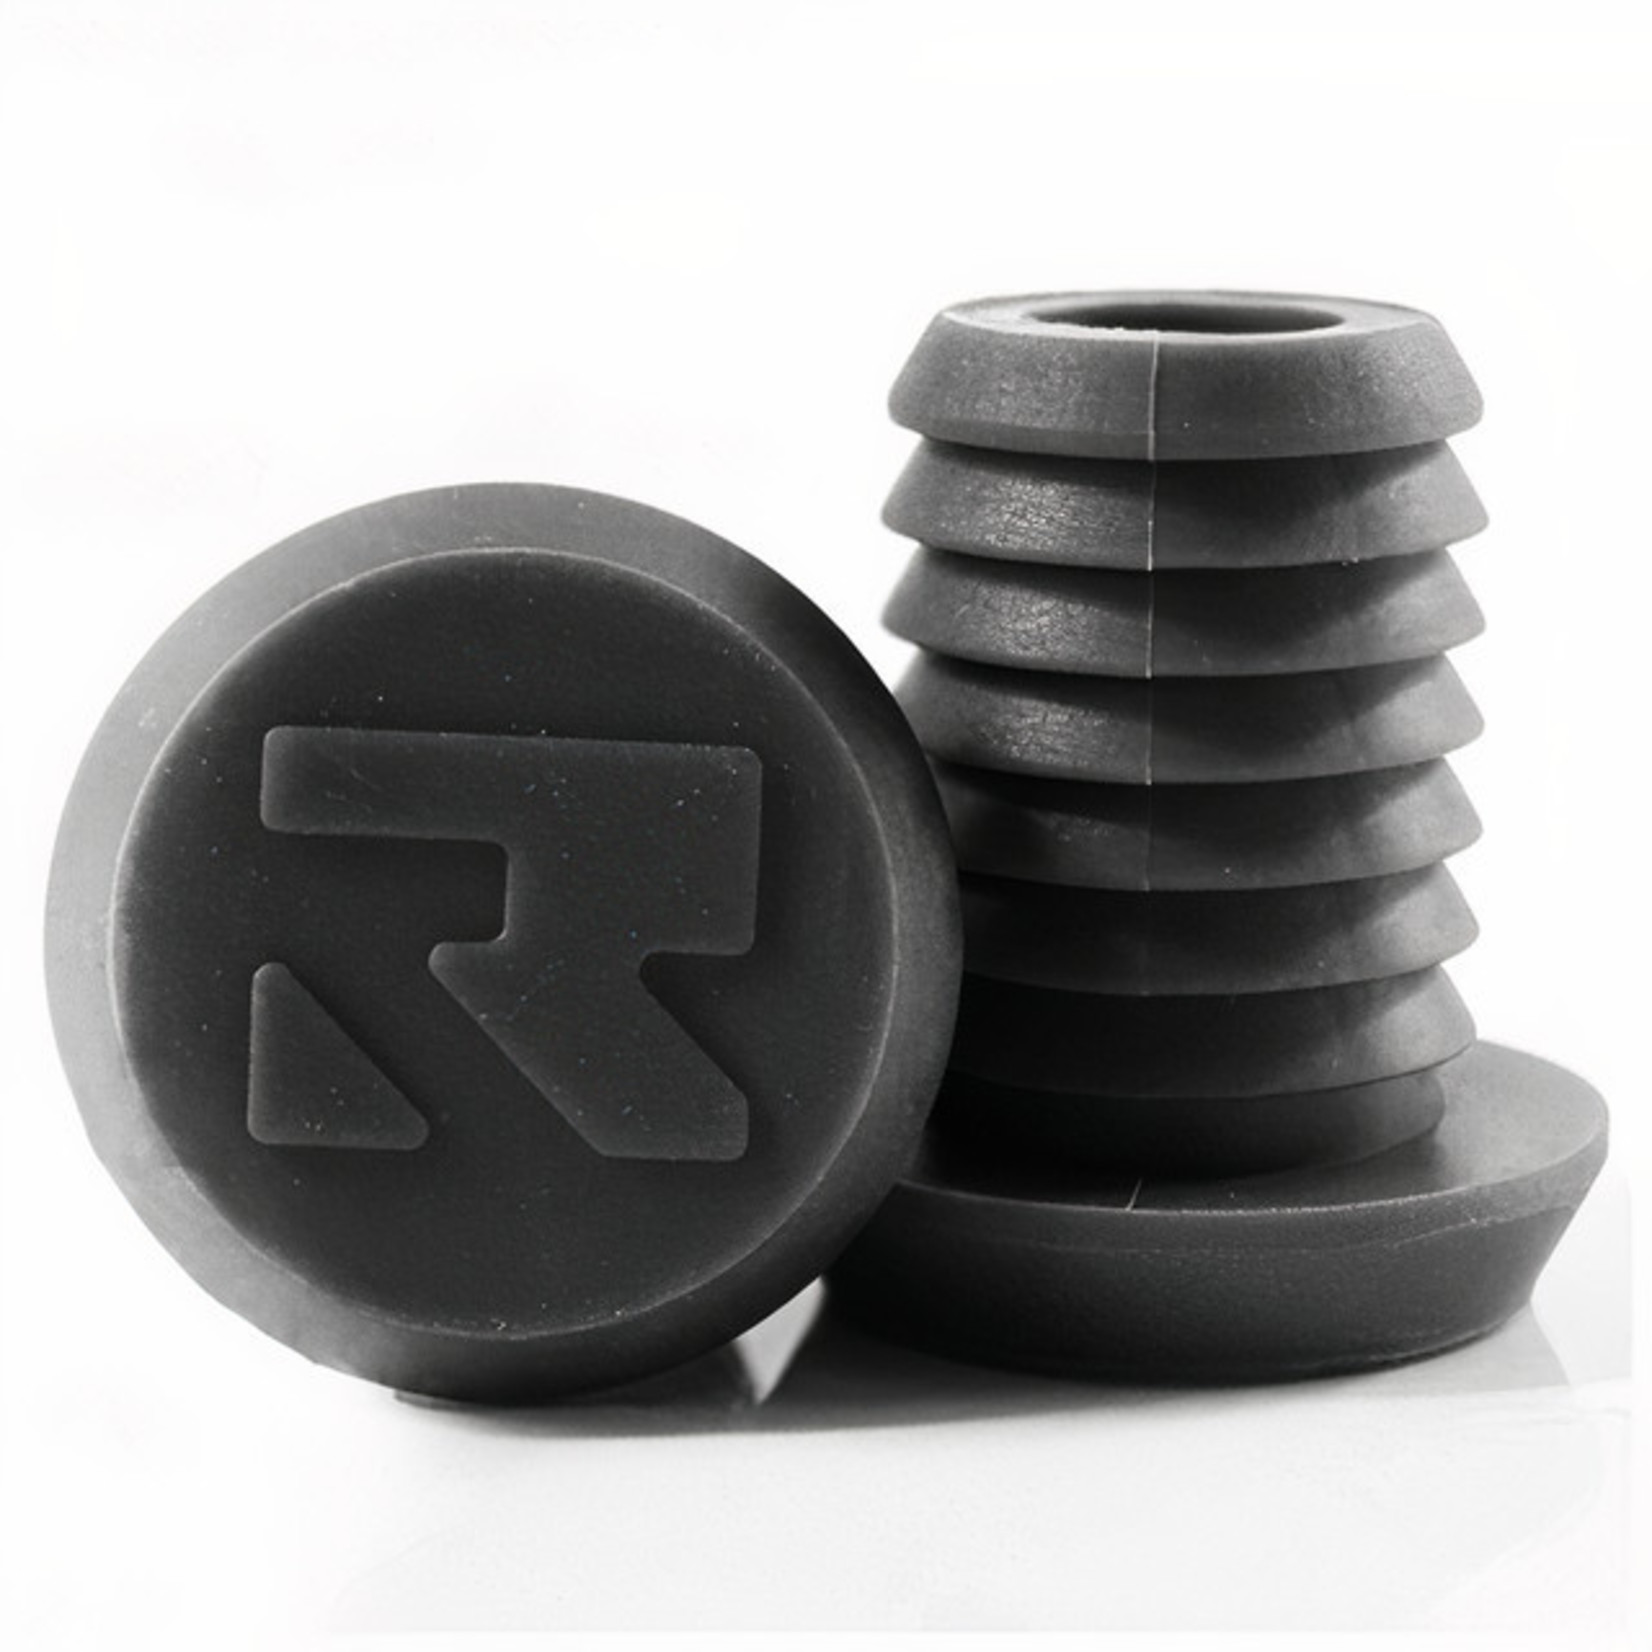 Root Industries Root Industries - Small Bar Ends for Aluminum Bars